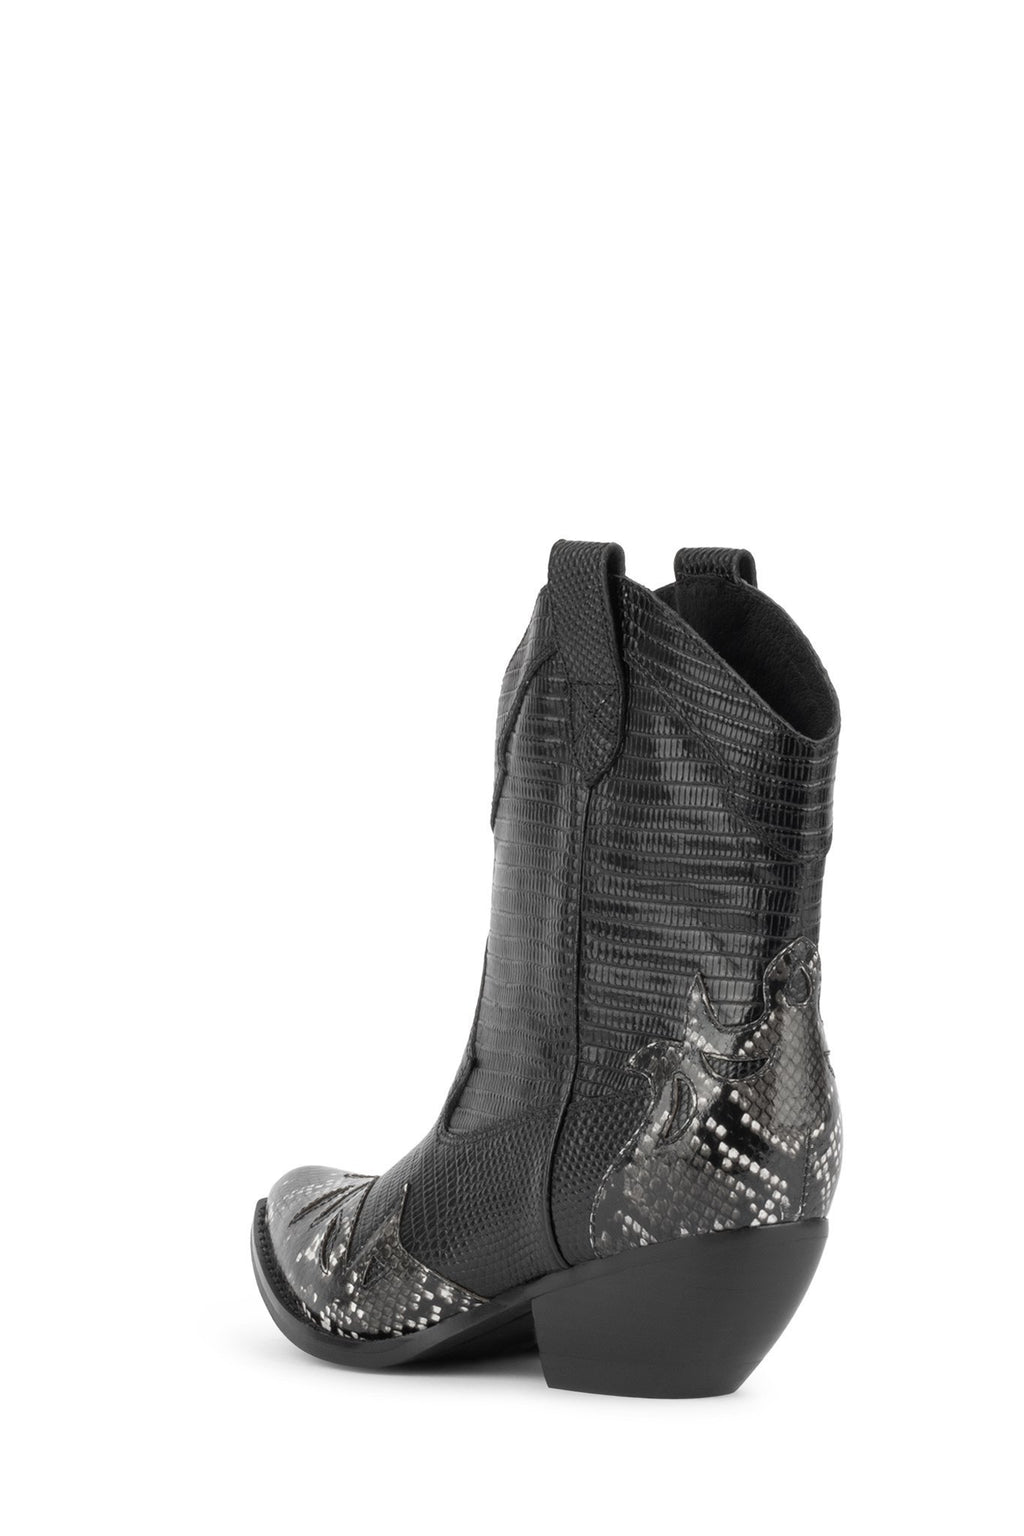 JEFFREY CAMPBELL | Calvera Boot Black Snake/ Lizard